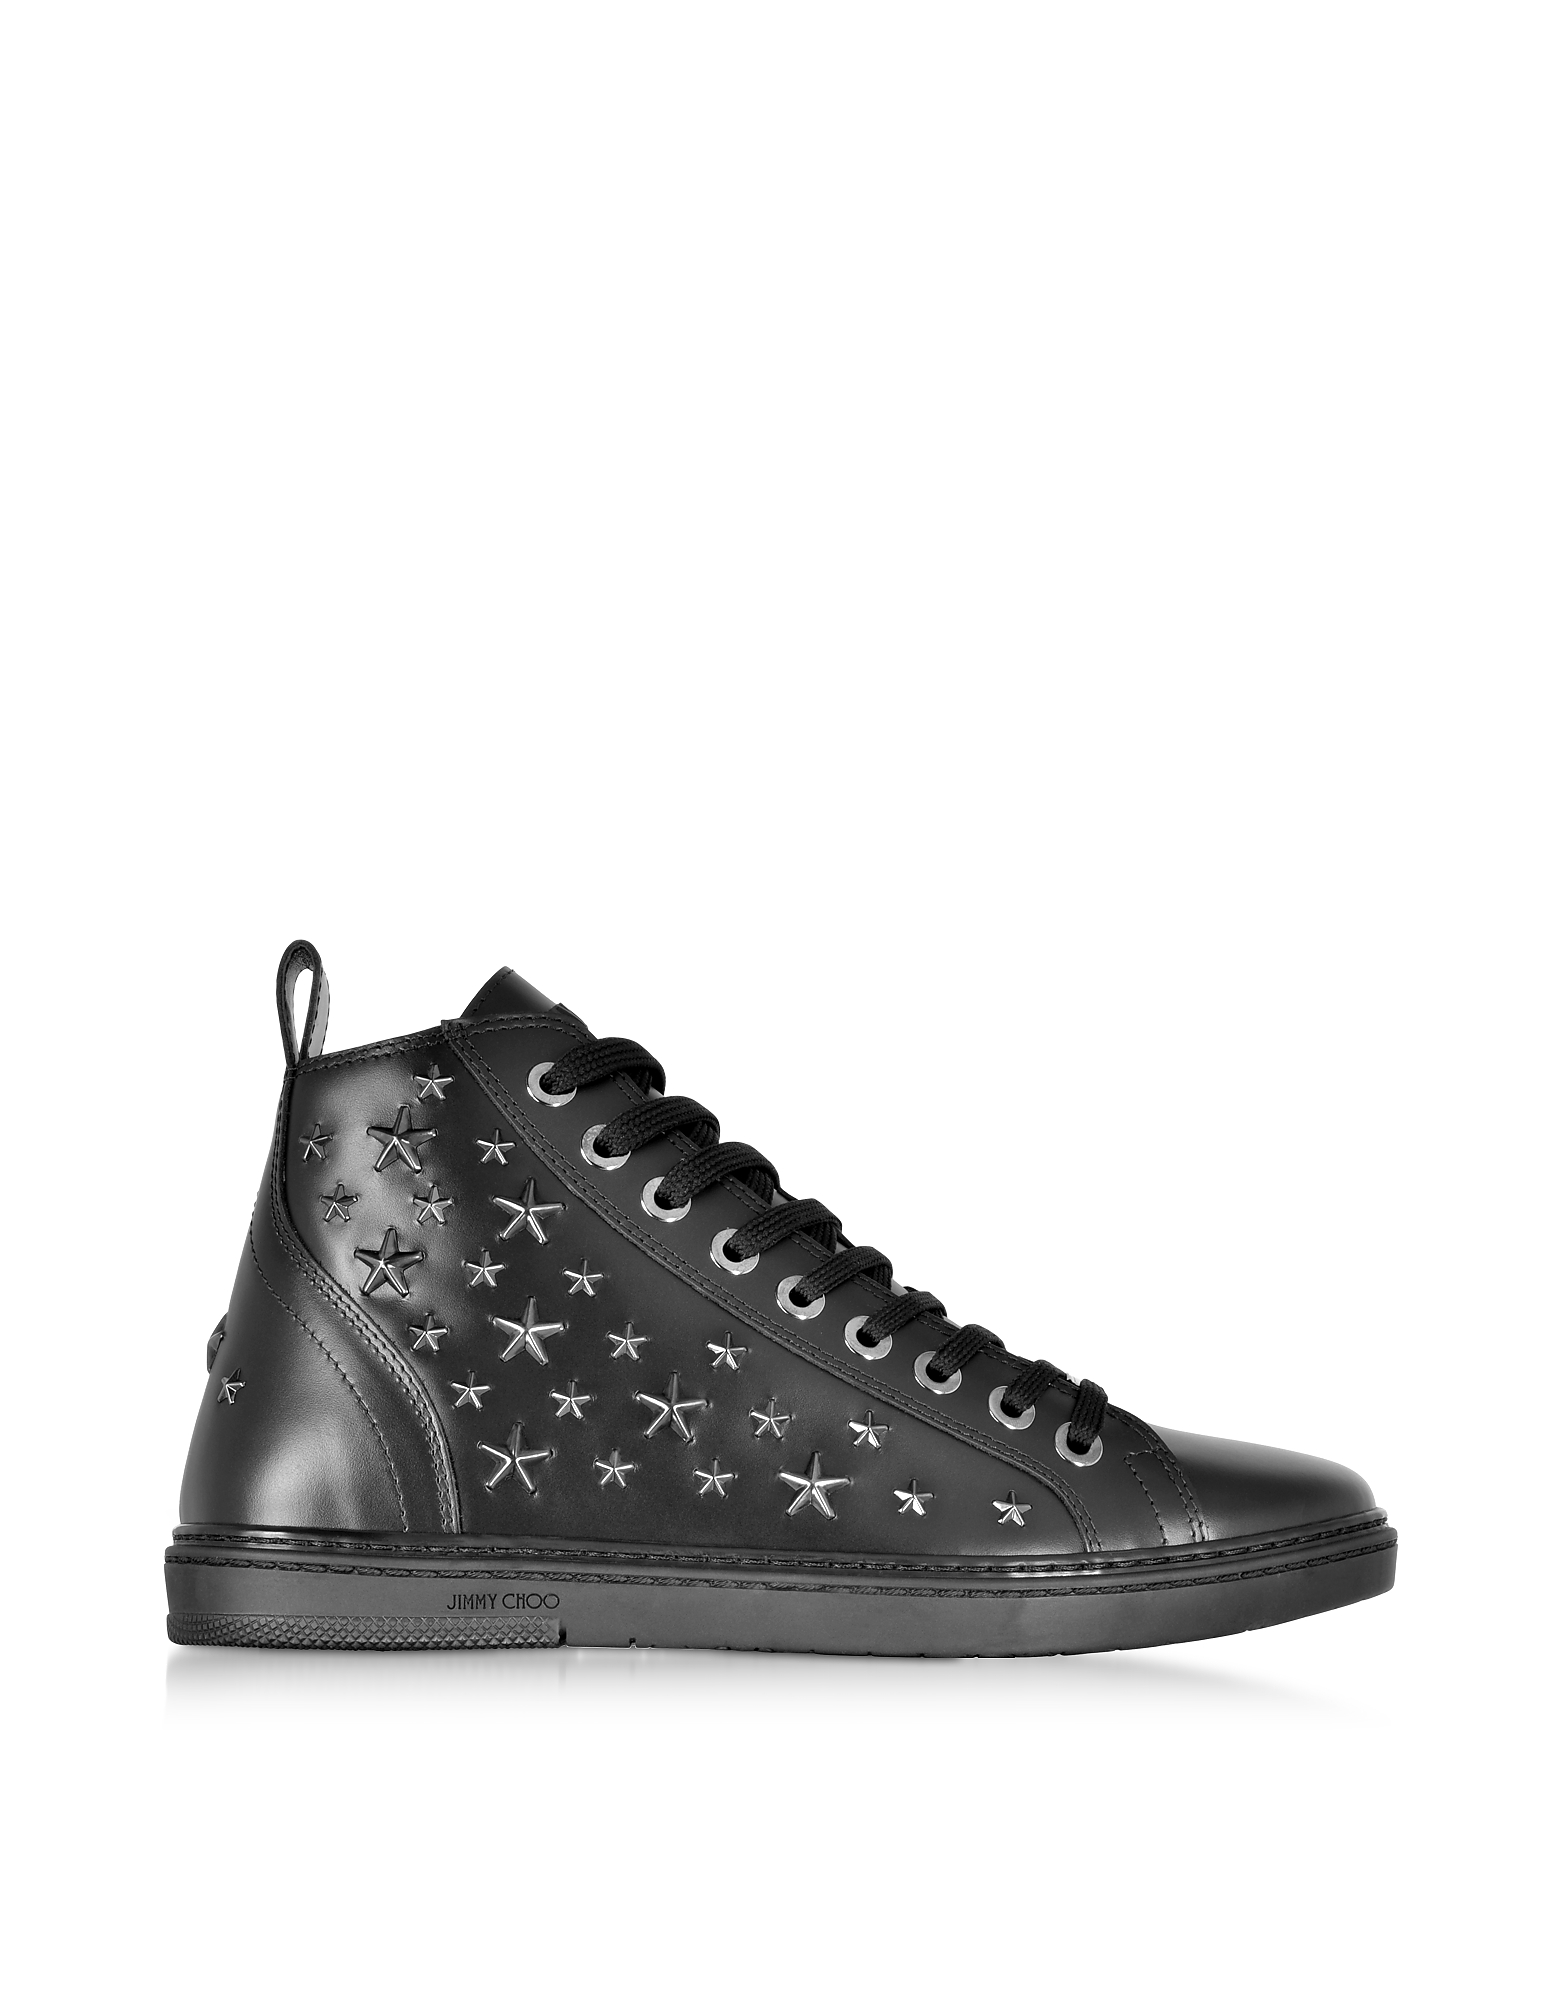 Jimmy Choo Designer Shoes, Colt Black Leather Sport High Top Sneakers w/Multi Stars